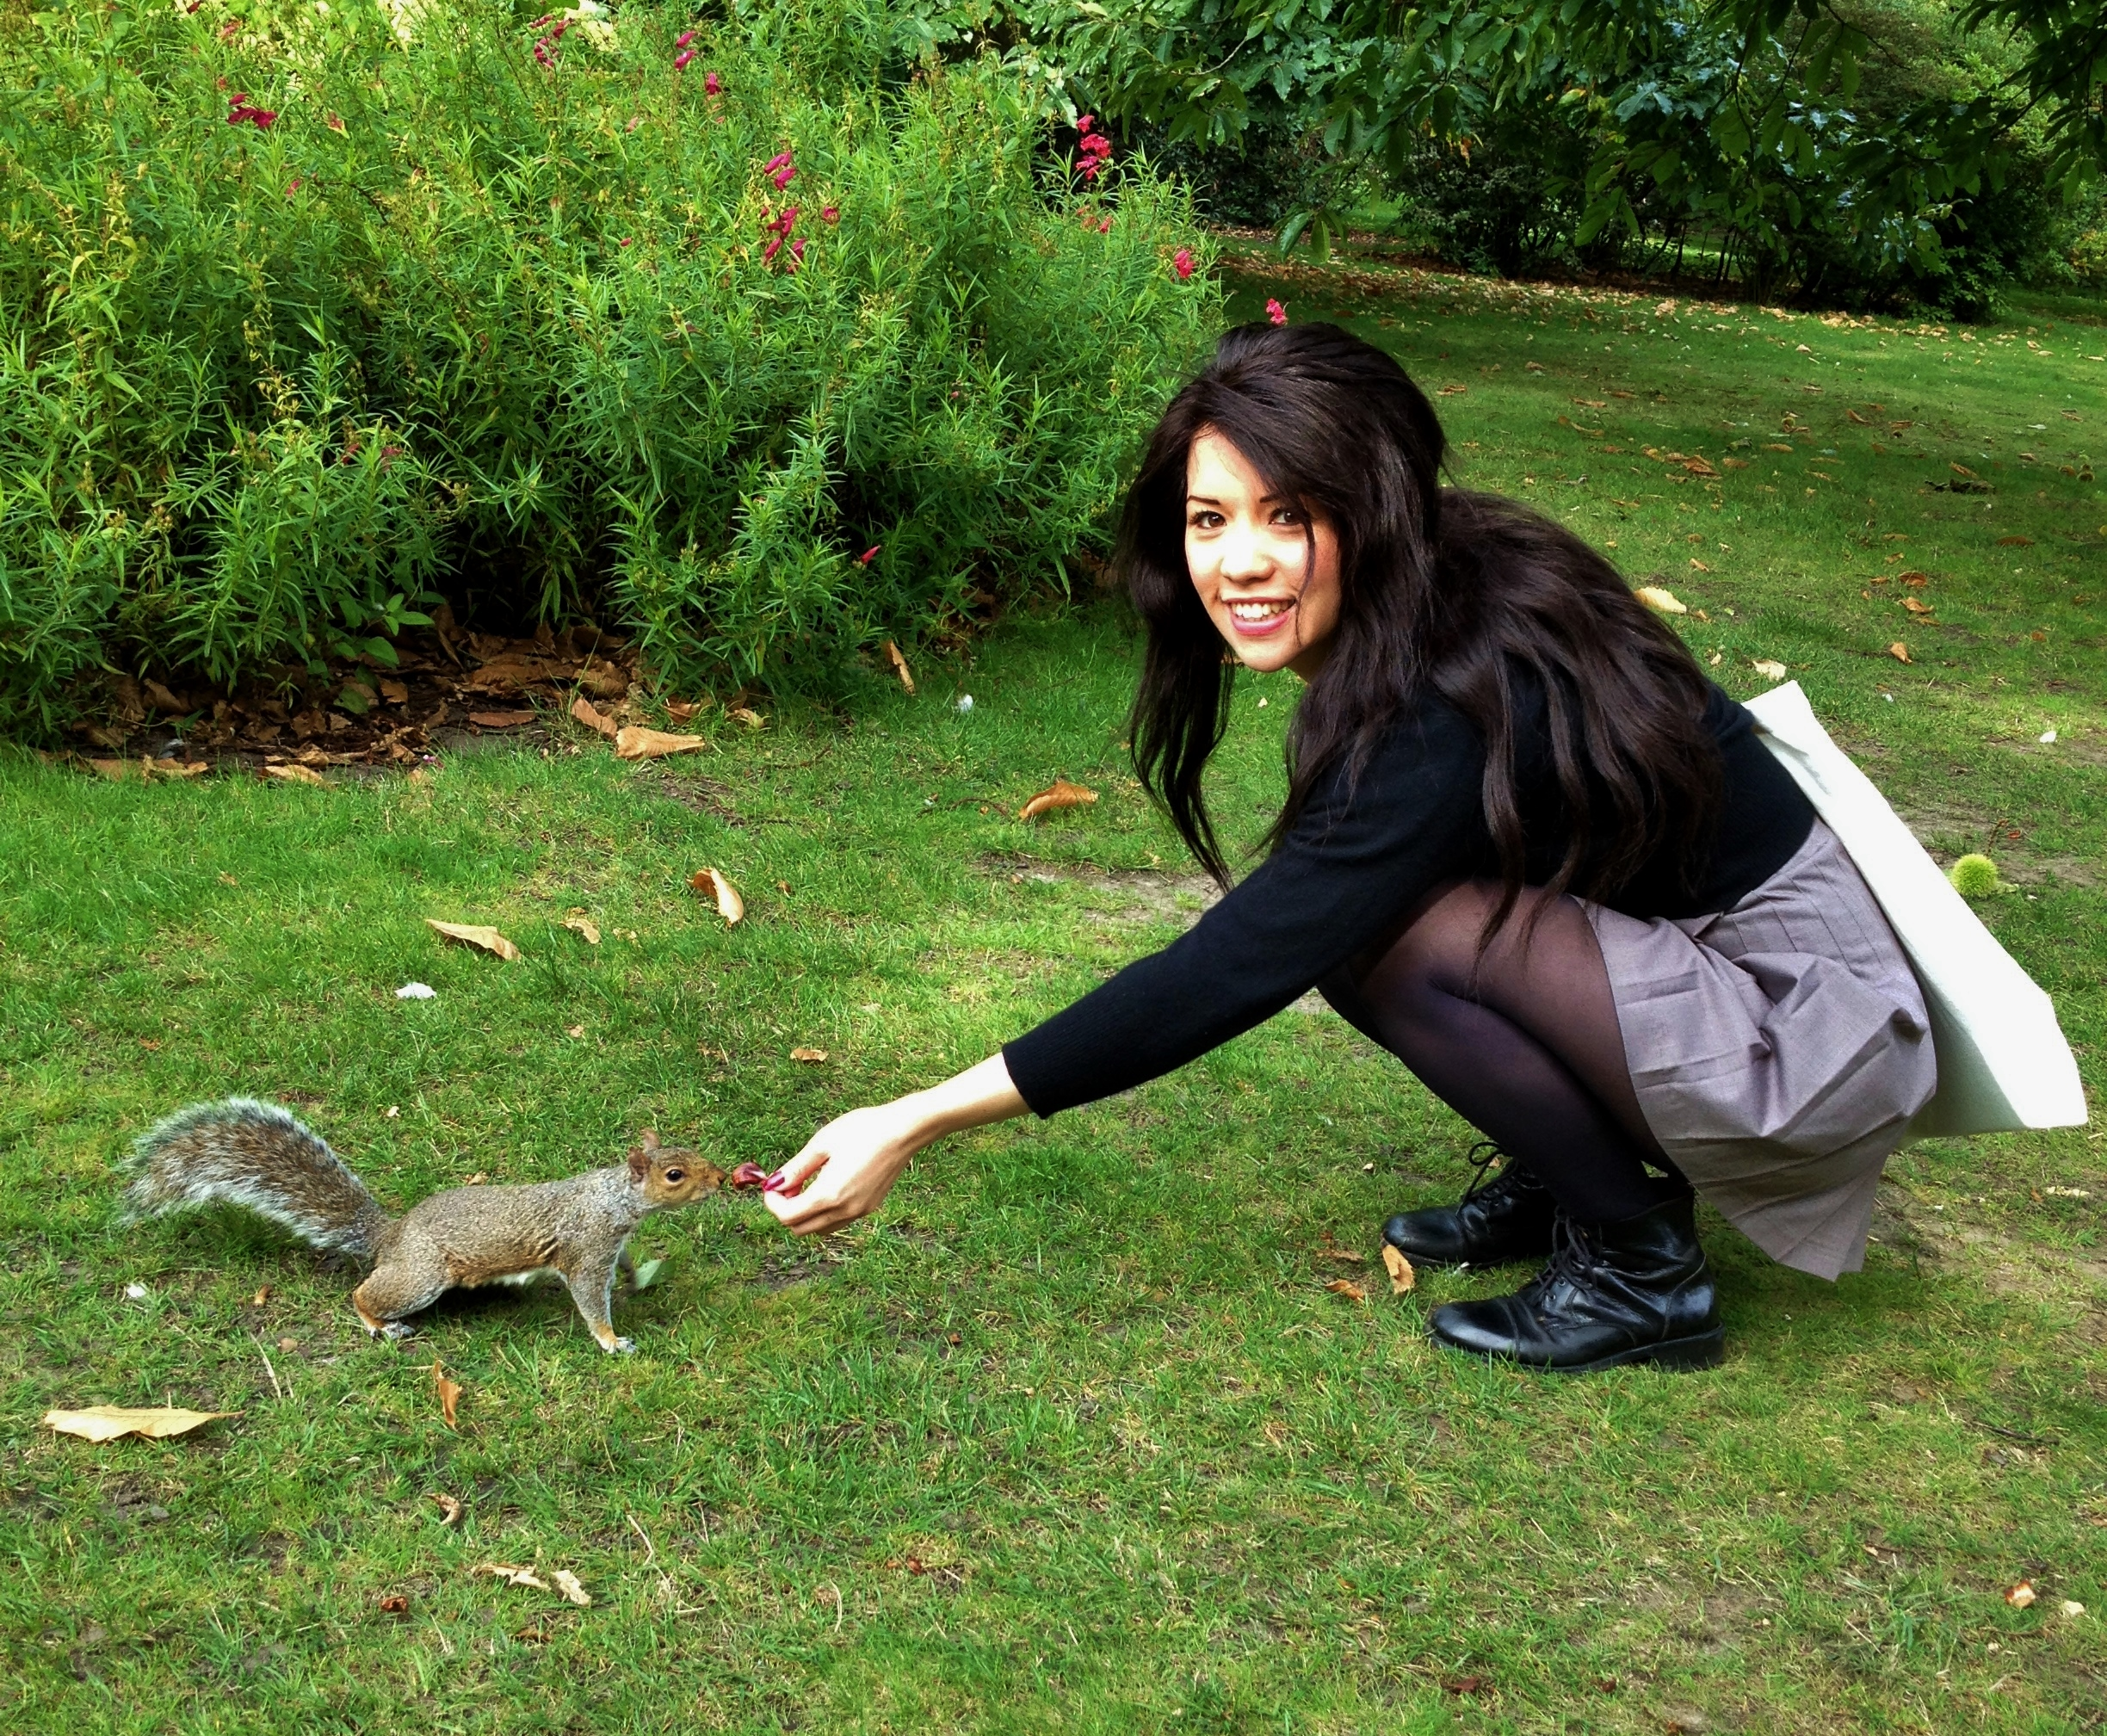 The squirrels in Greenwich Park